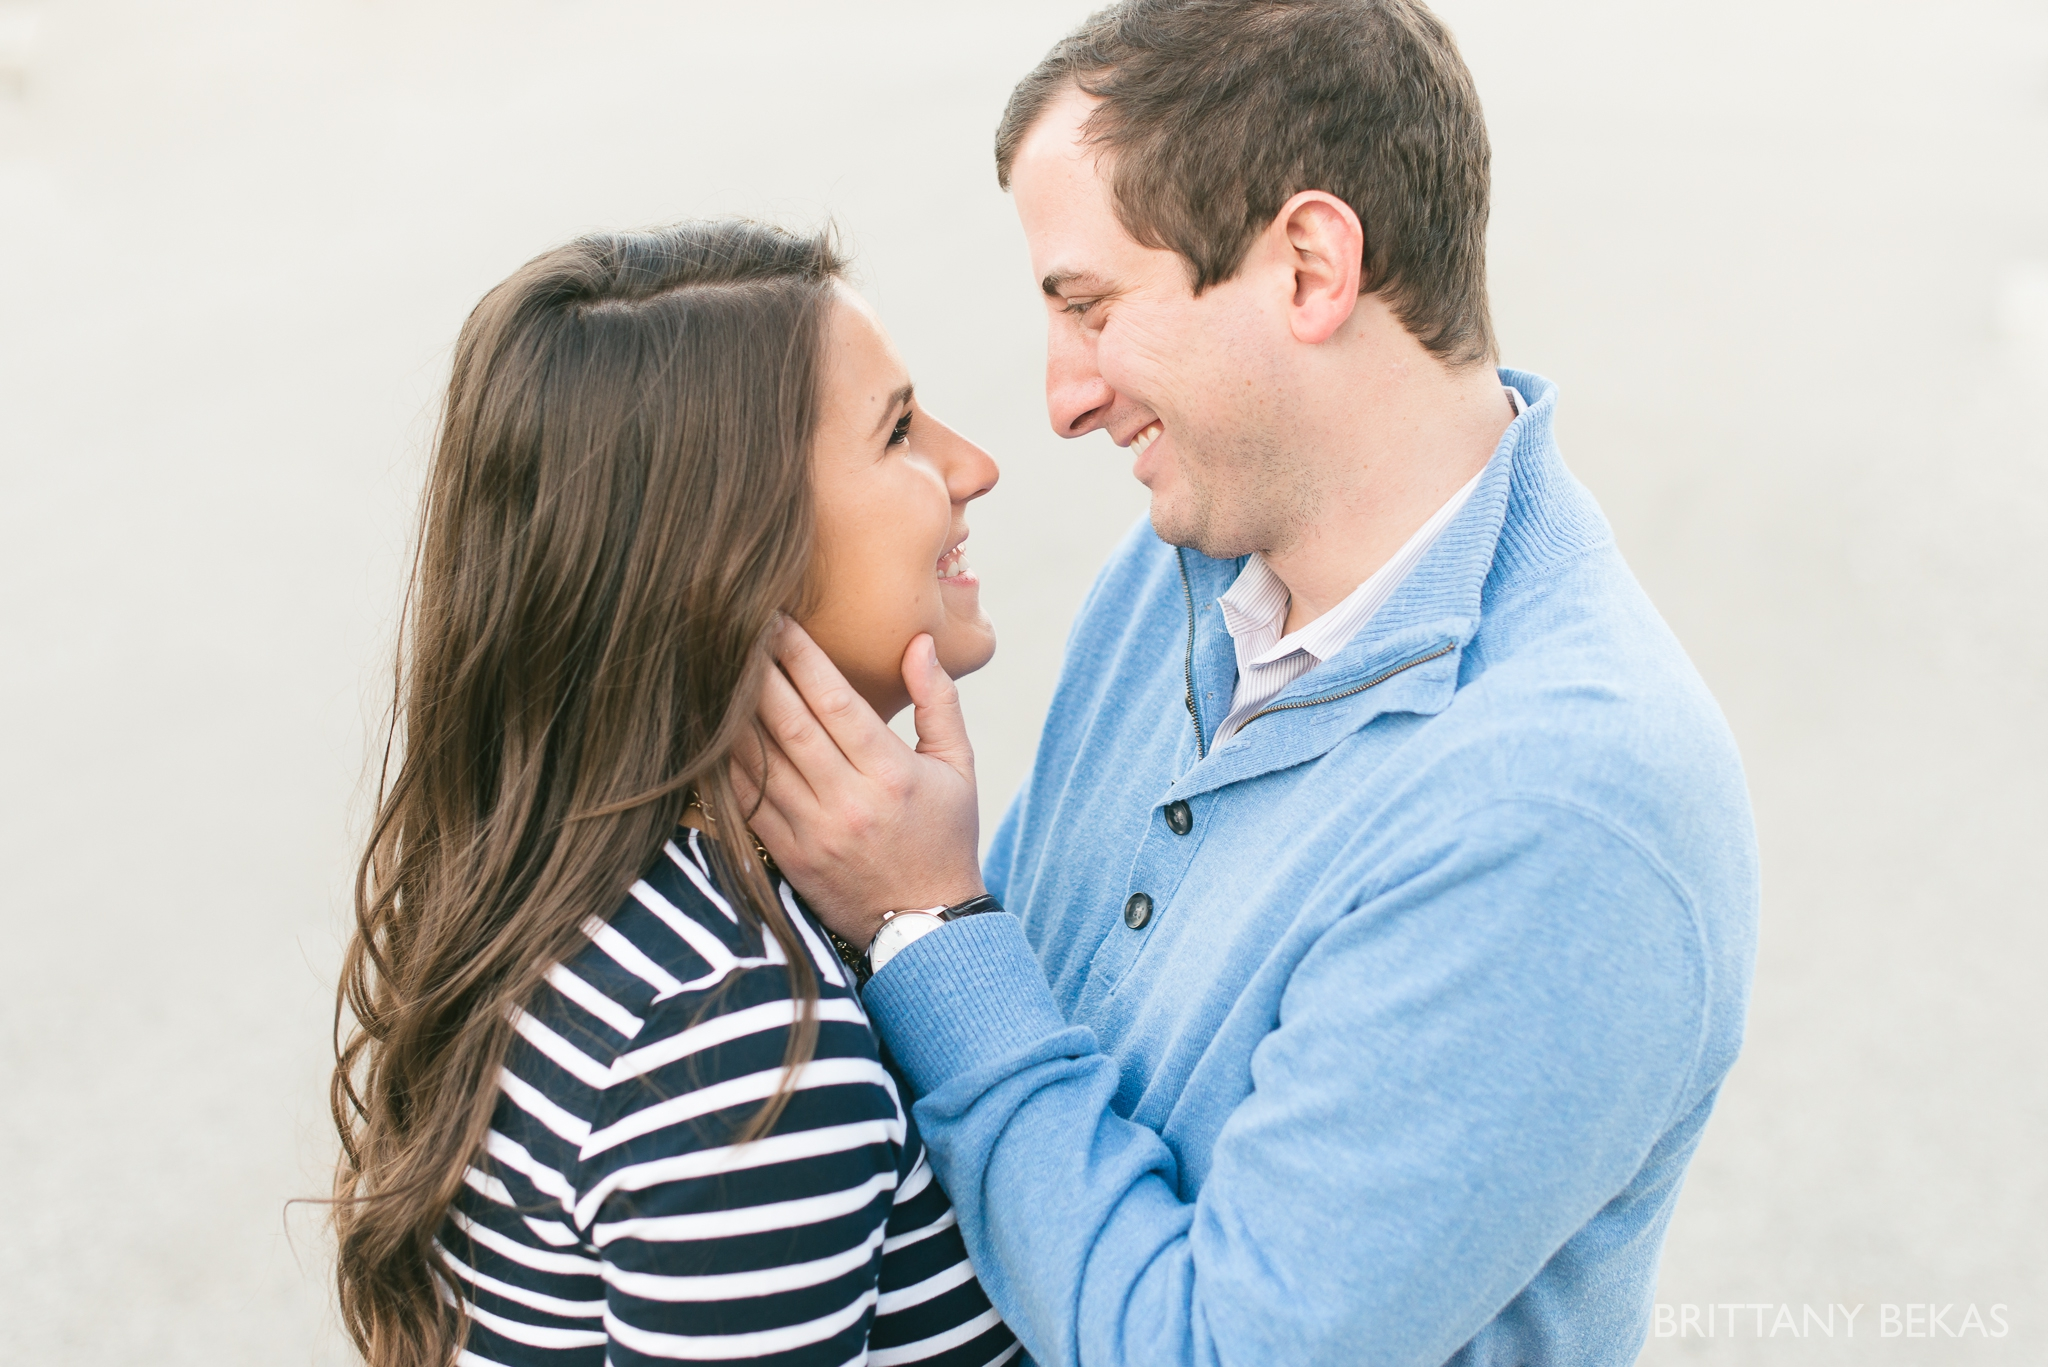 Chicago Engagement Lincoln Park Engagement Photos - Brittany Bekas Photography_0029